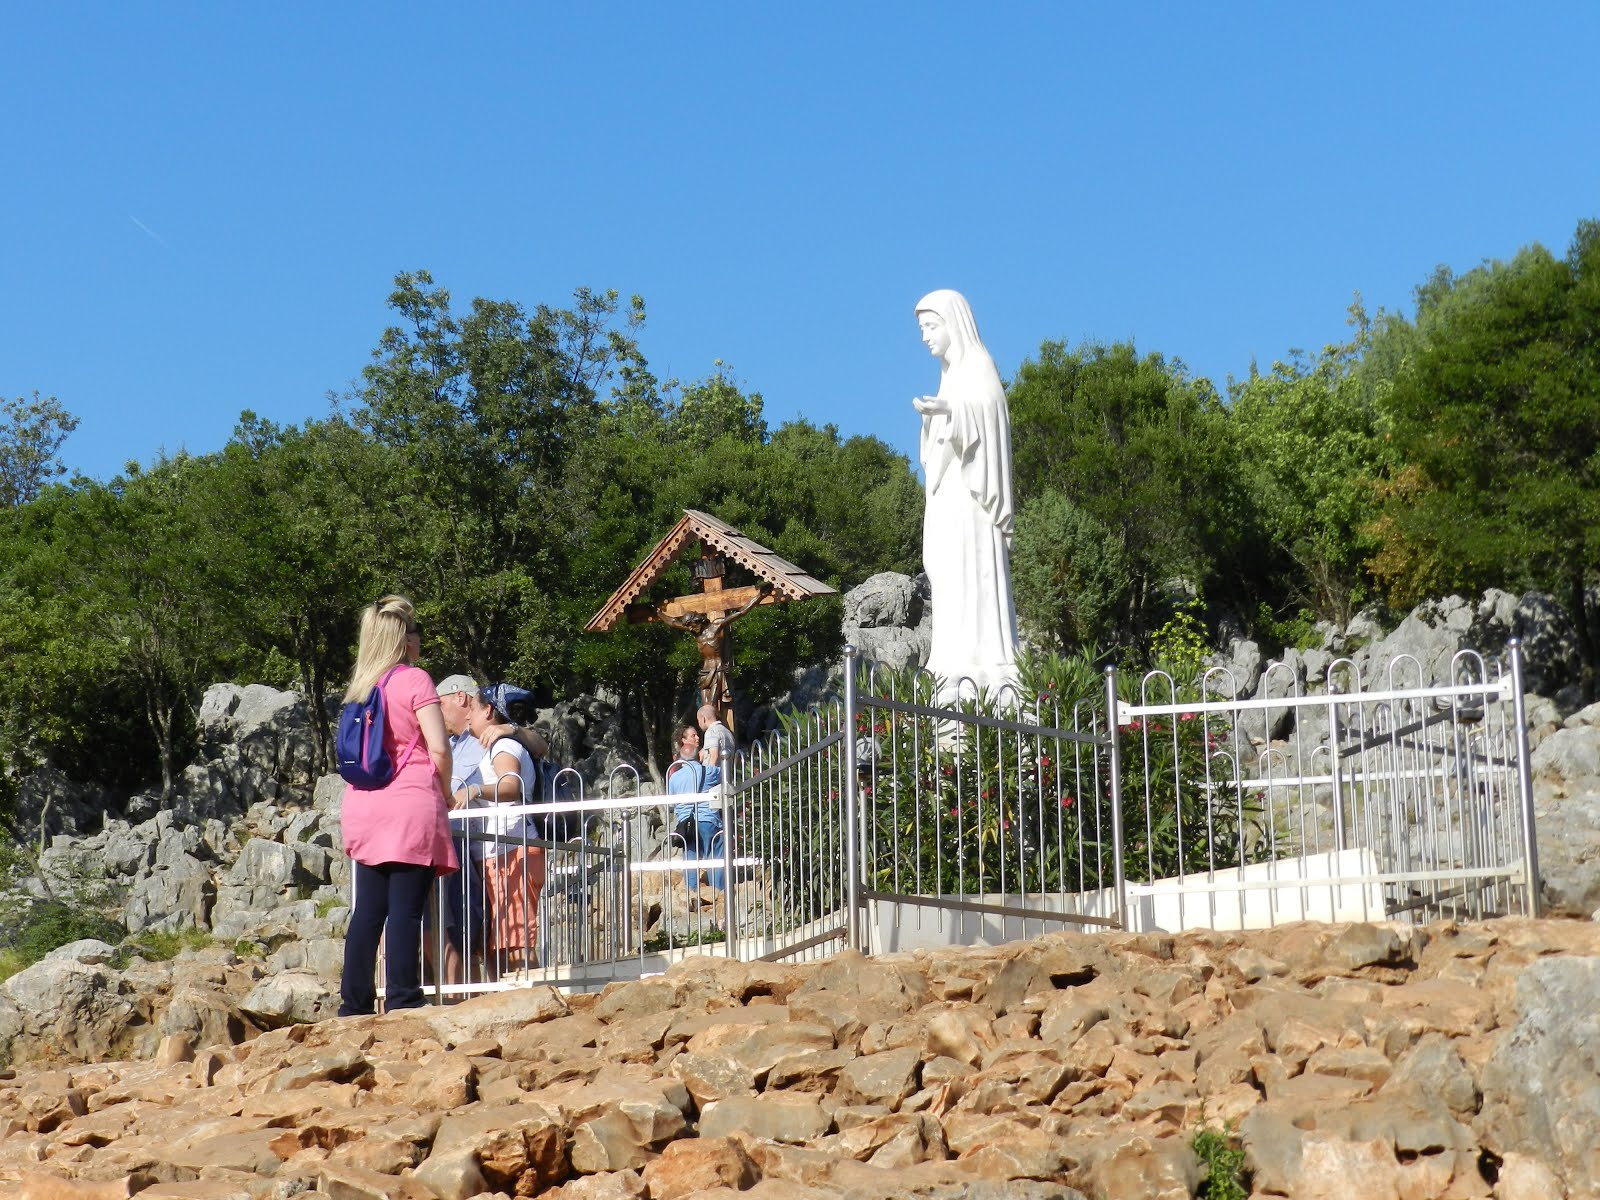 Our Lady's October 2, 2019 Message From Medjugorje